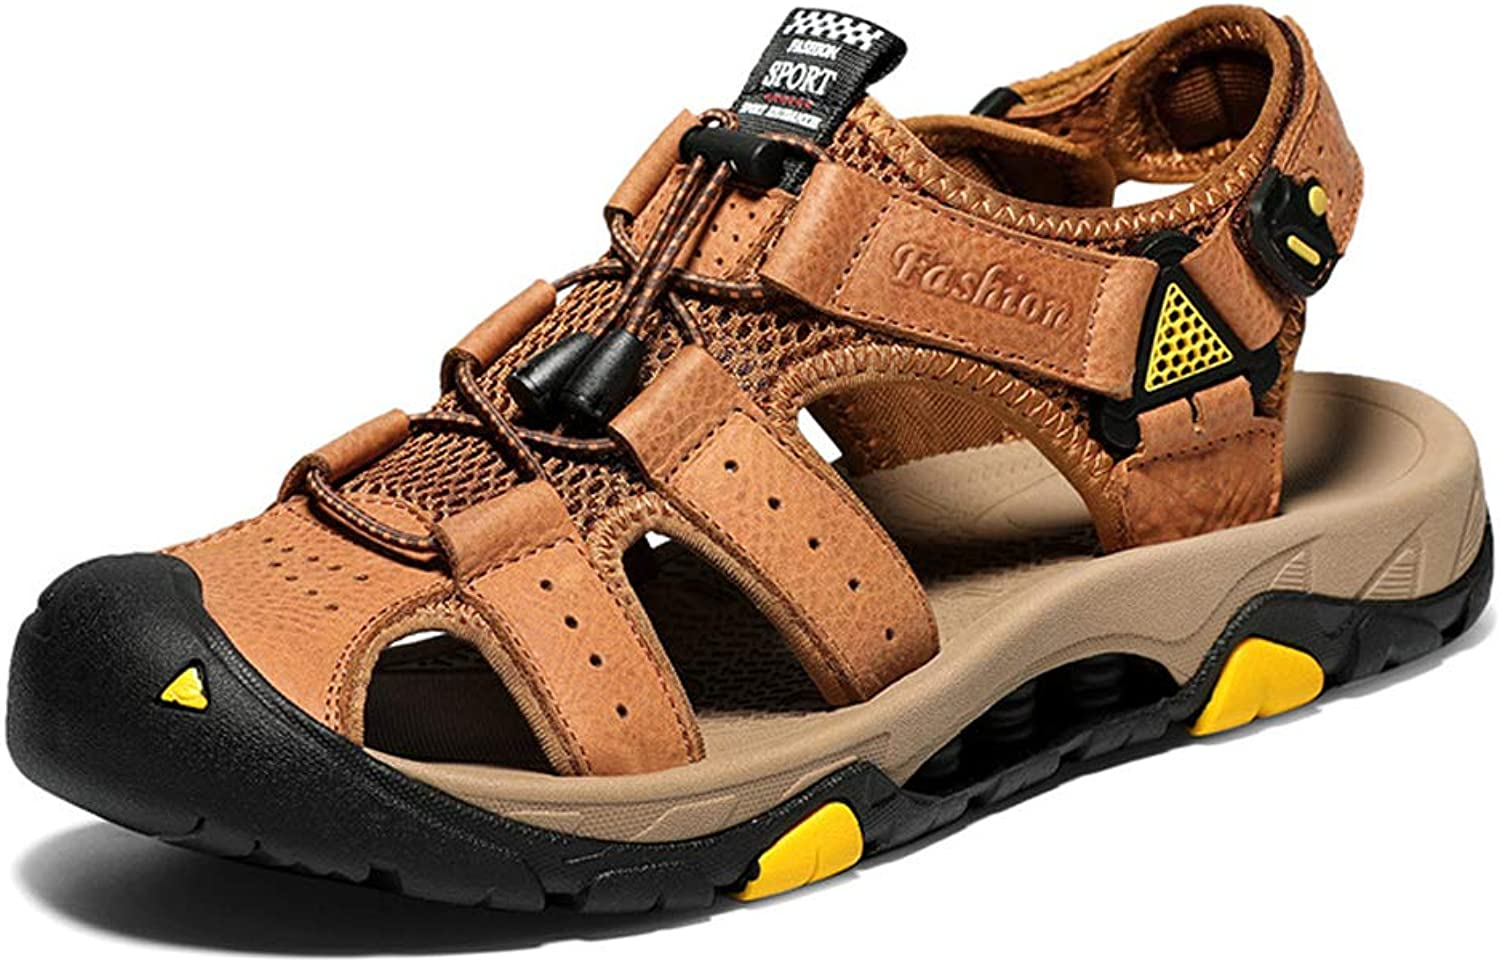 TYX-SS Breathable Leather Men'S Sandals Beach shoes Sandals And Slippers